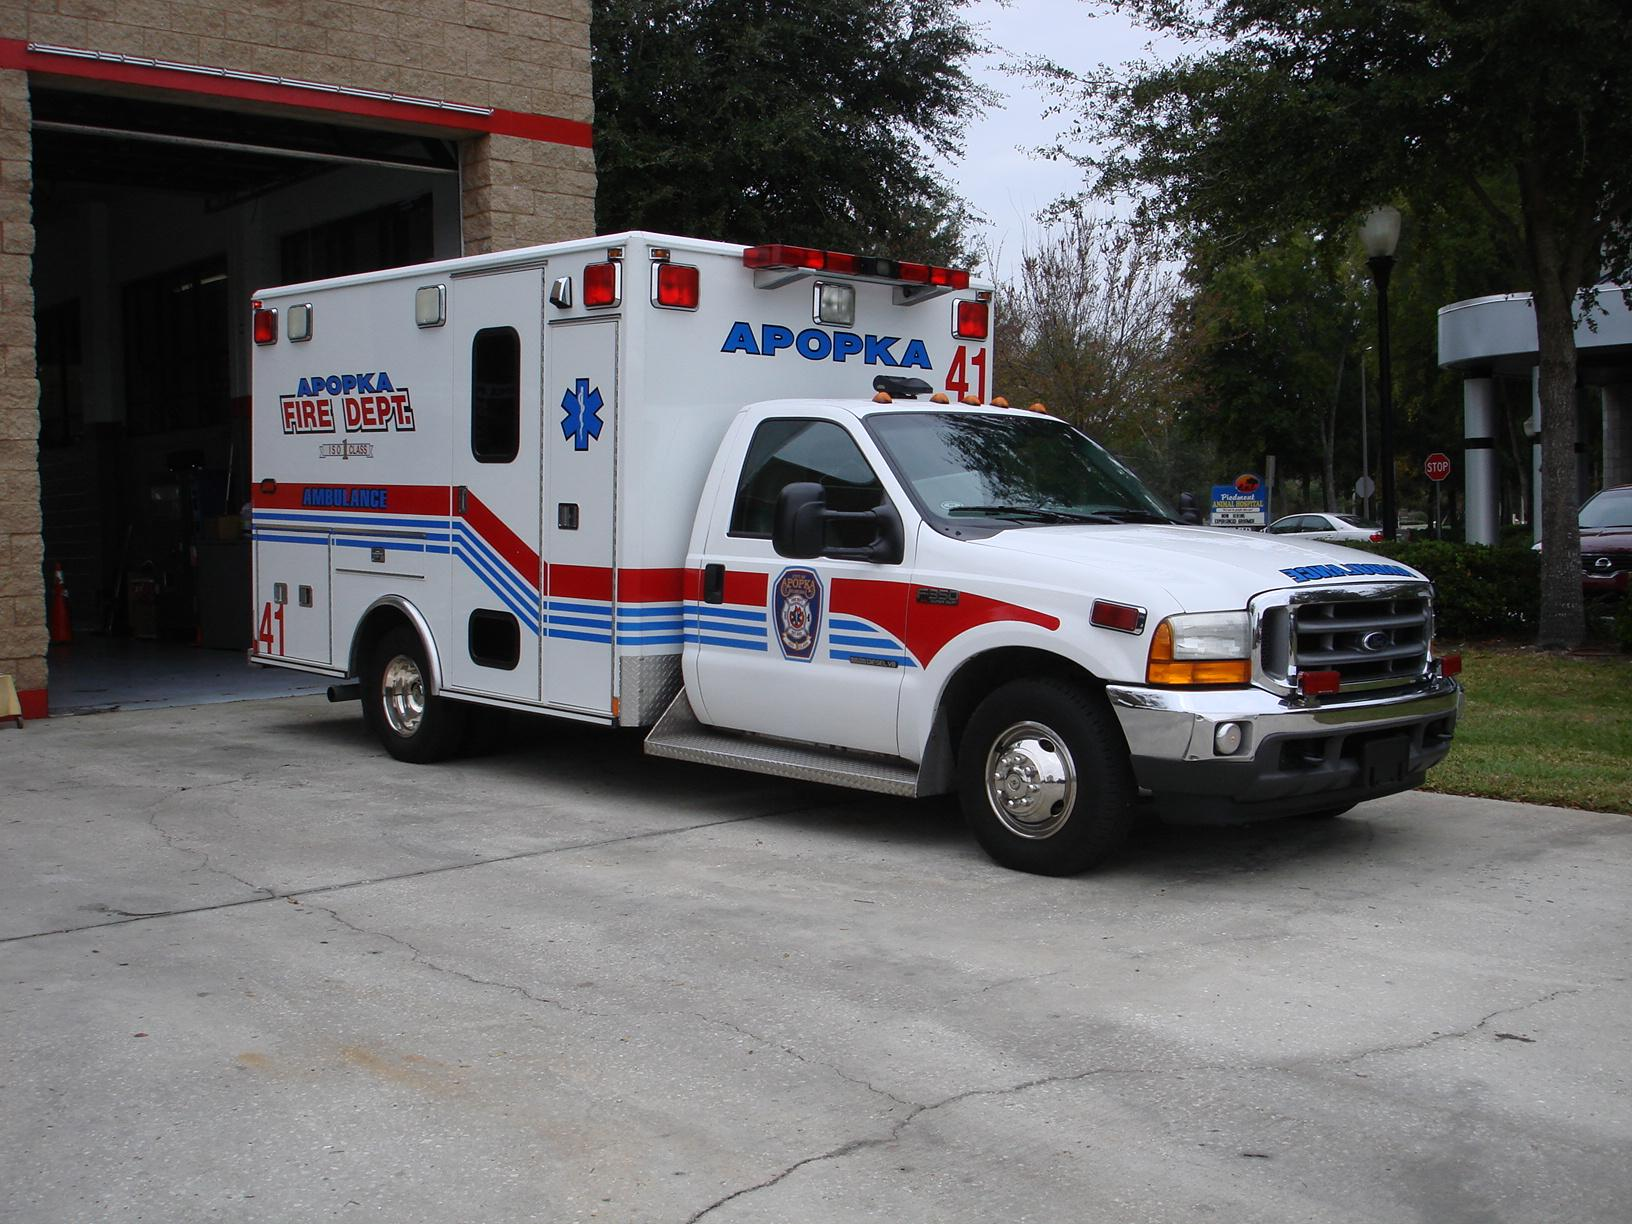 Apopka ambulance in front of the fire station.